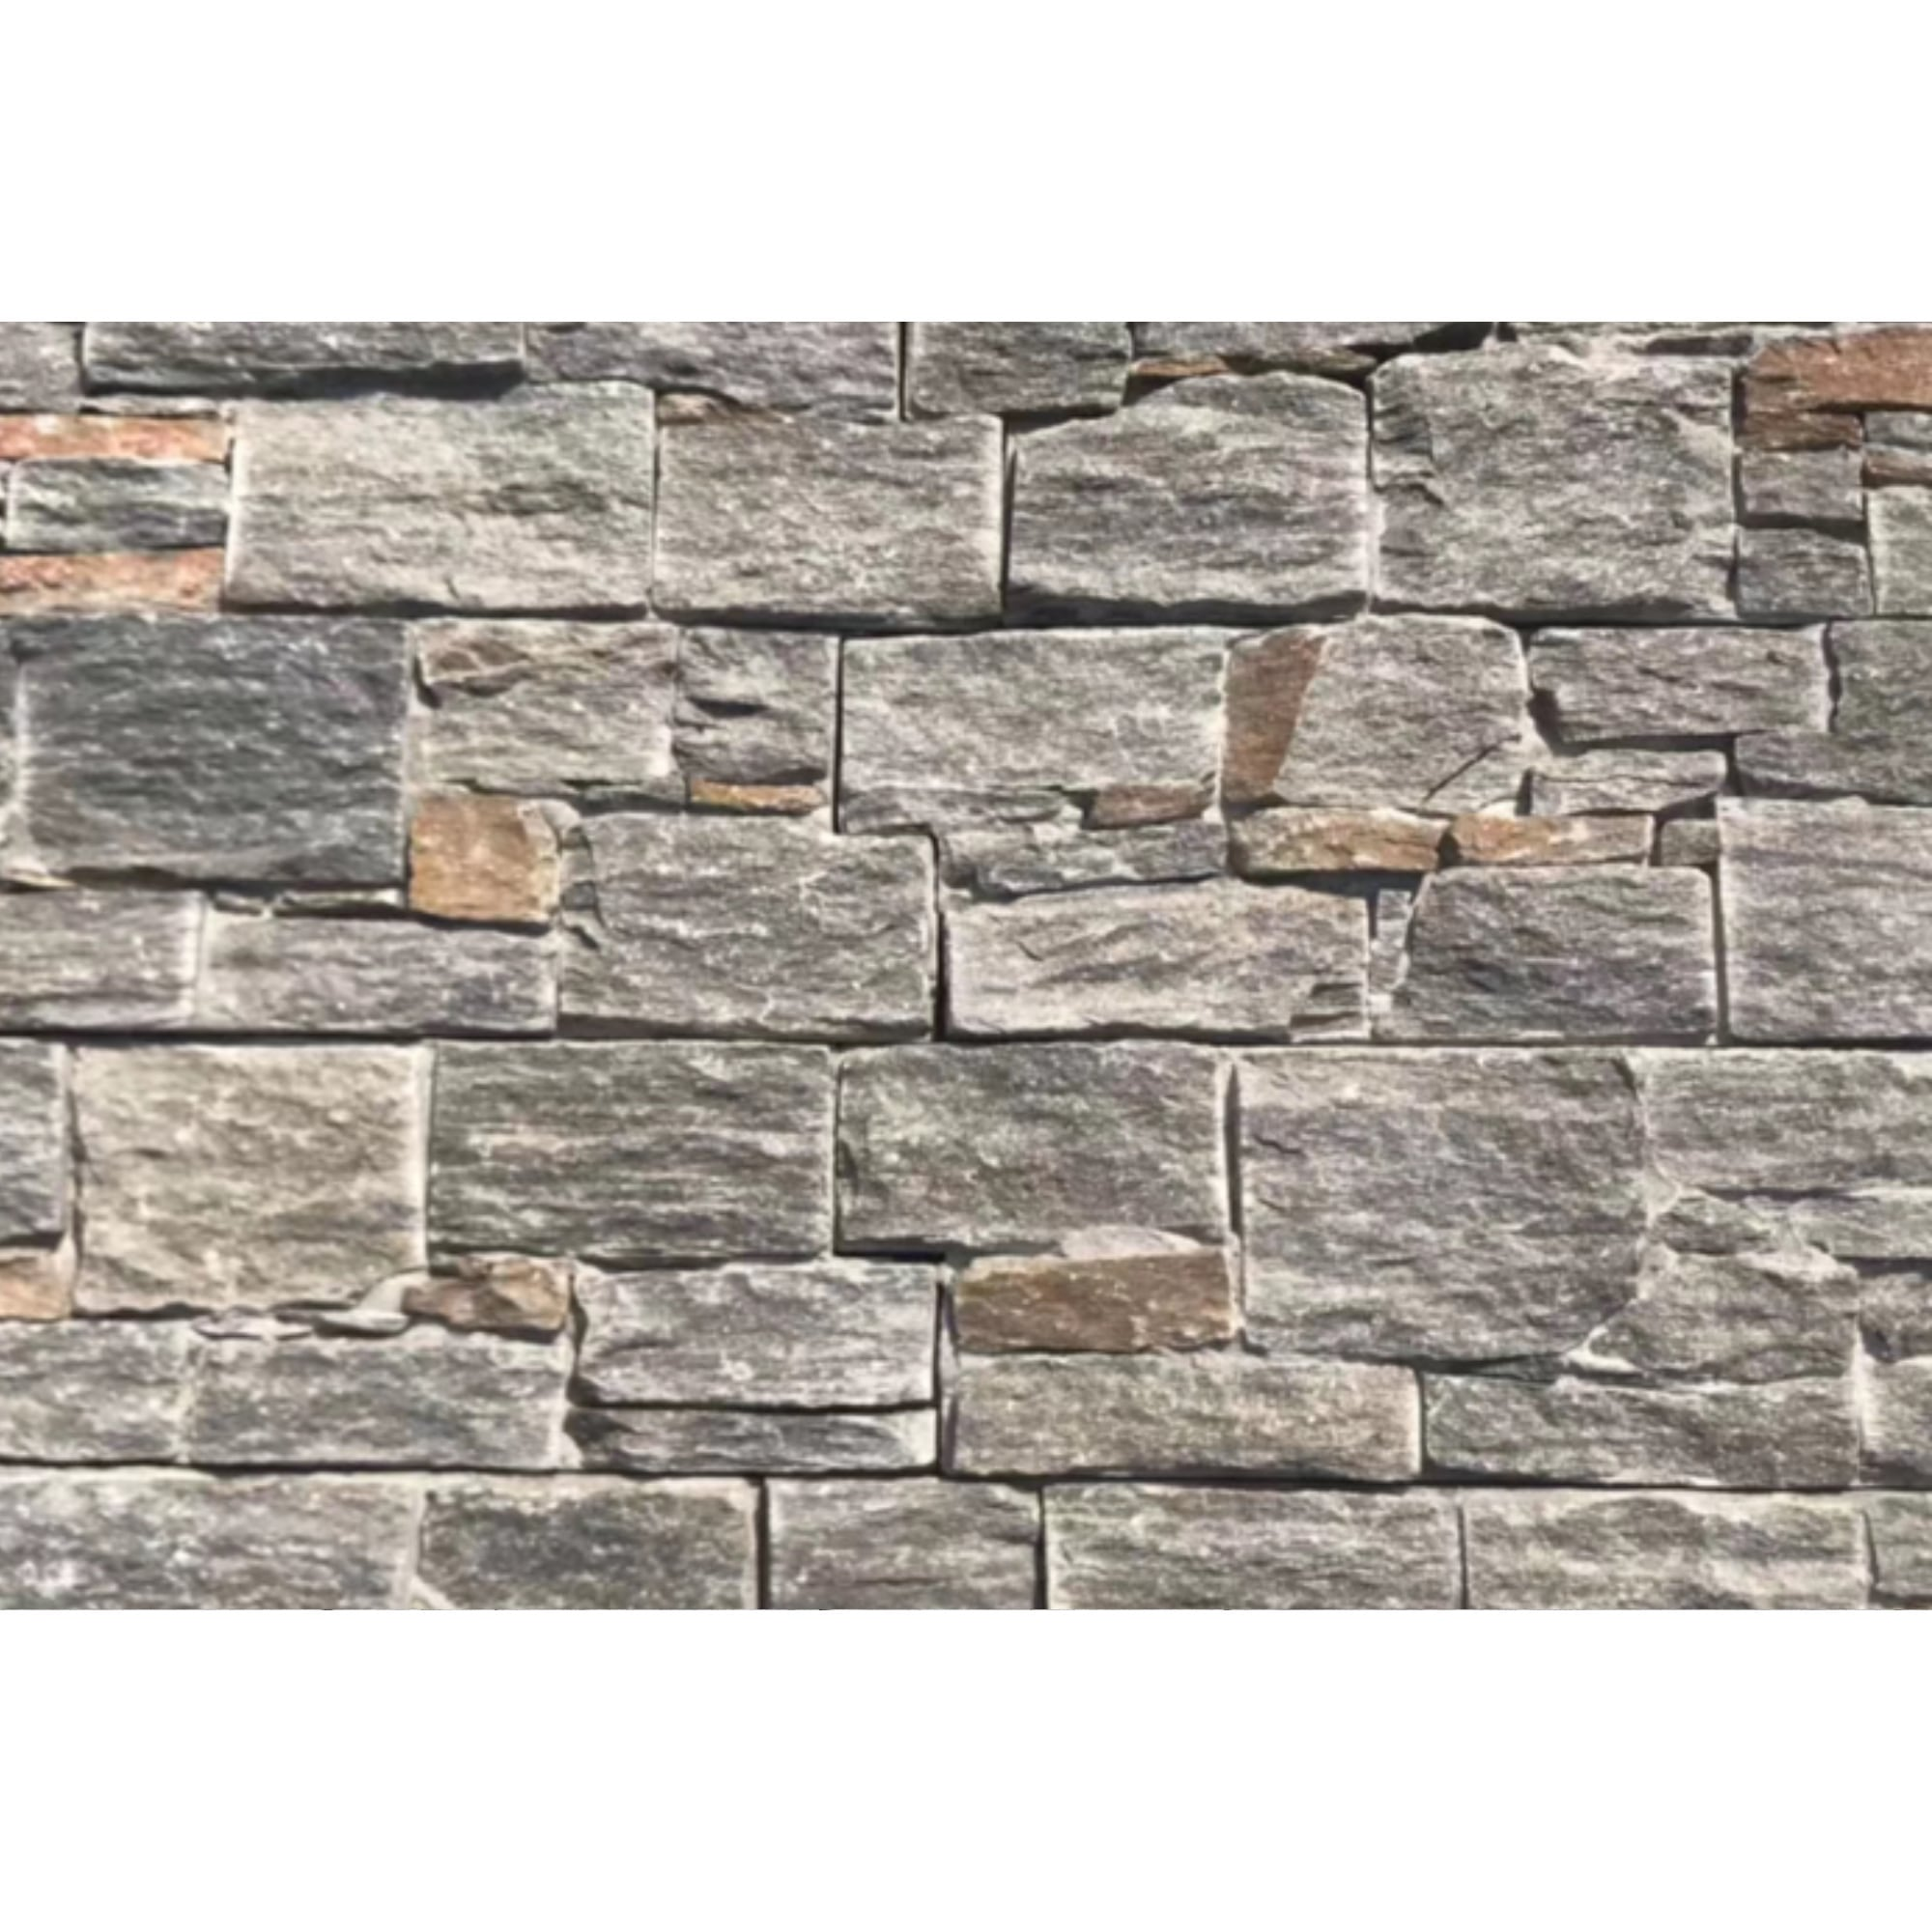 Pre-Order | Ledgestone Wall Cladding - Dark Grey Rustic Quartzite